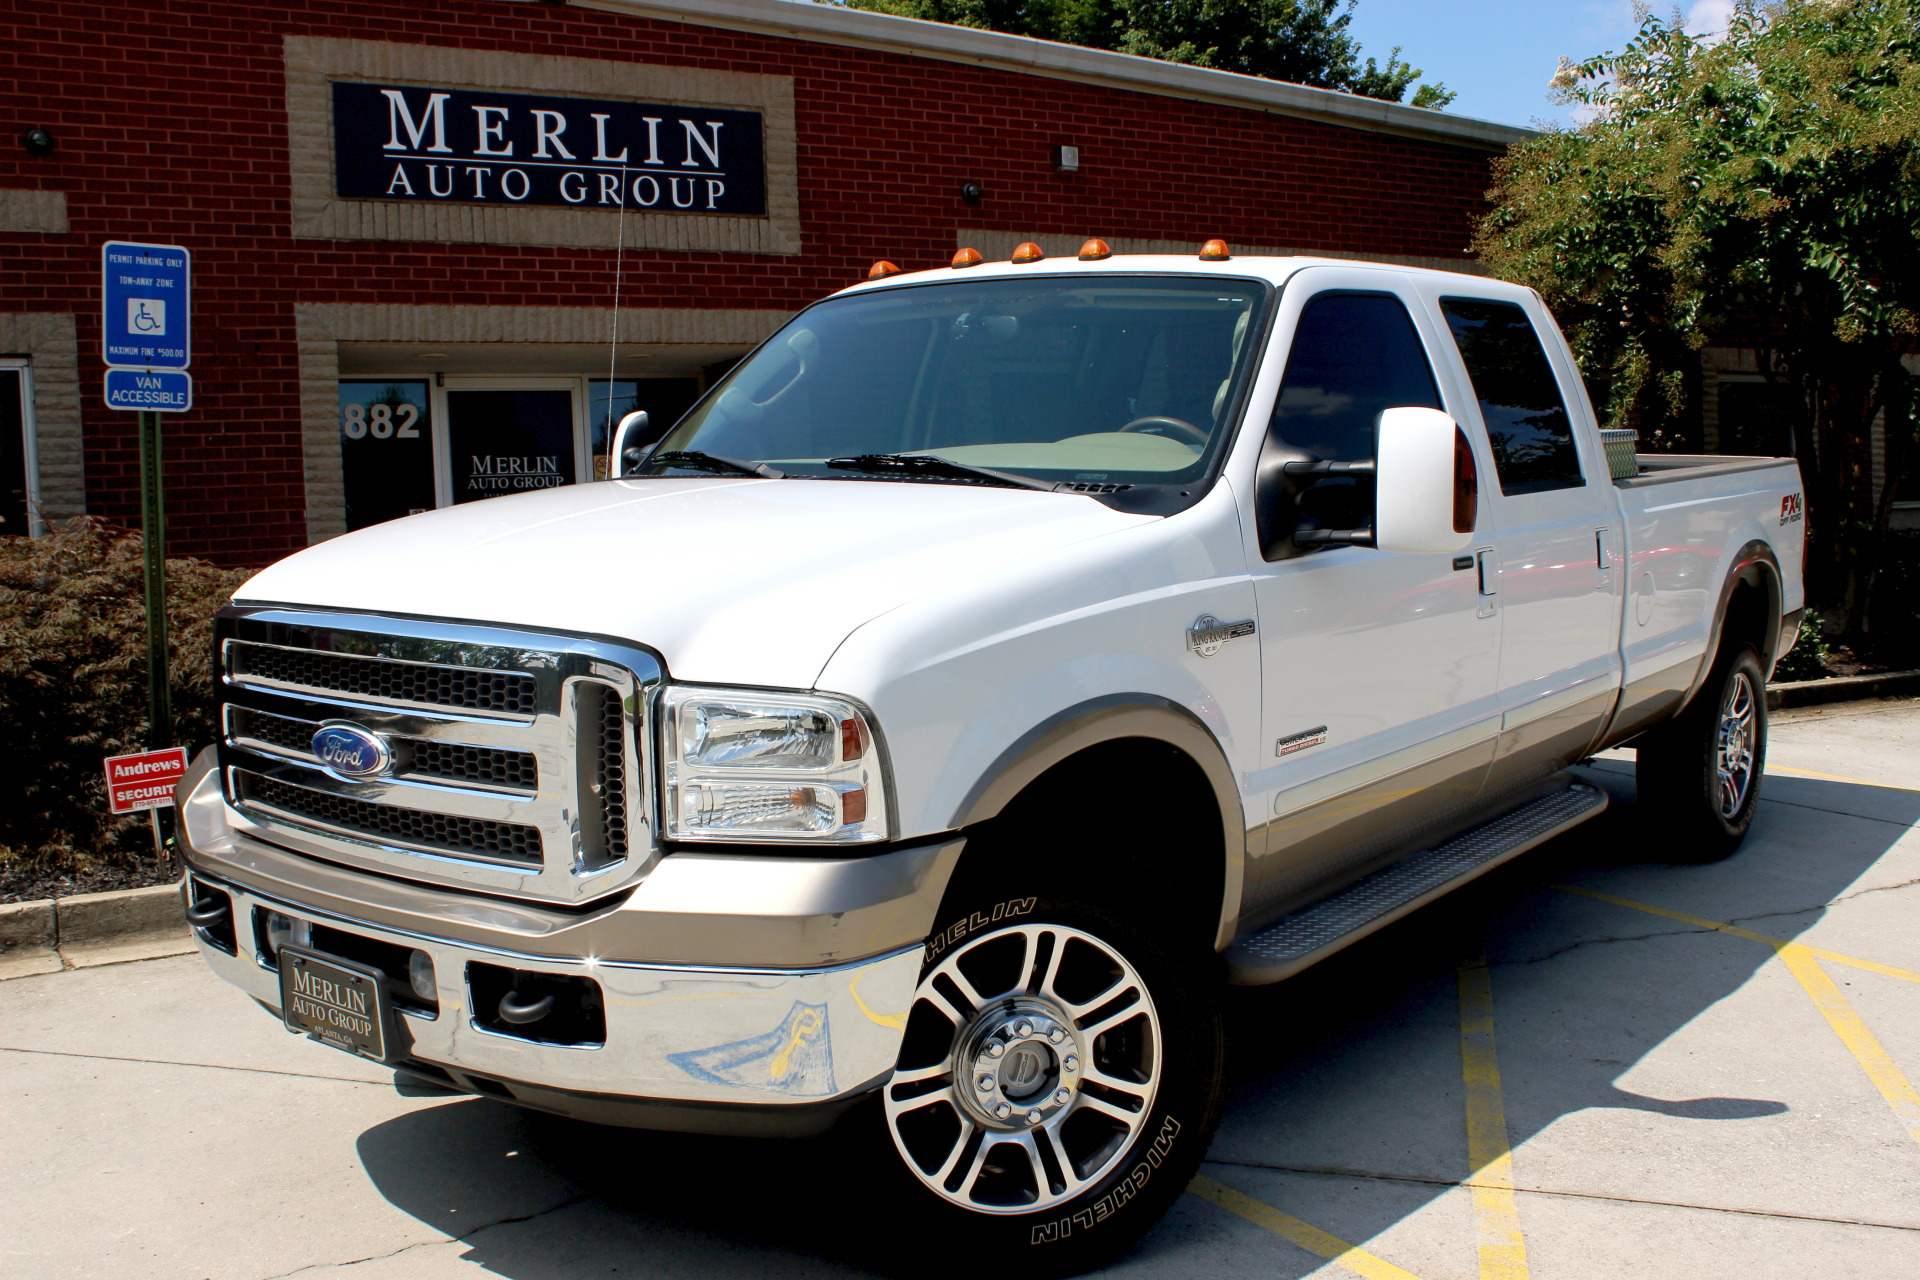 Used 2005 Ford F-350 SD stock P3220 - Ultra Luxury Car from Merlin Auto Group